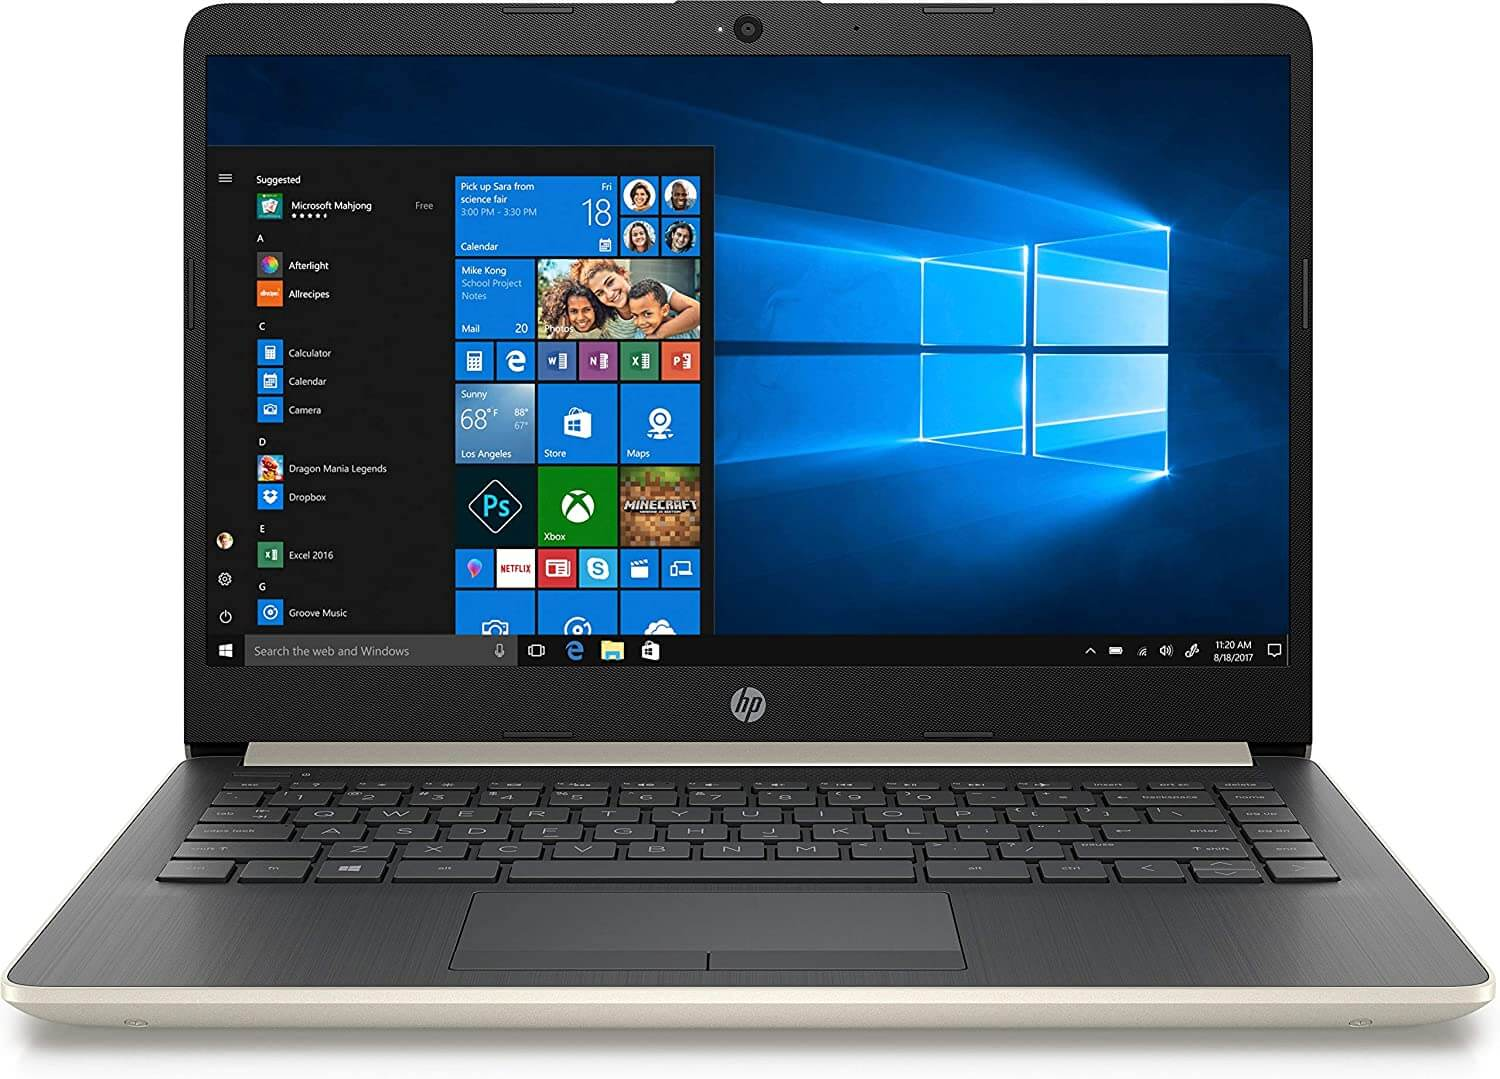 5. HP 2019 14 inches LAPTOP